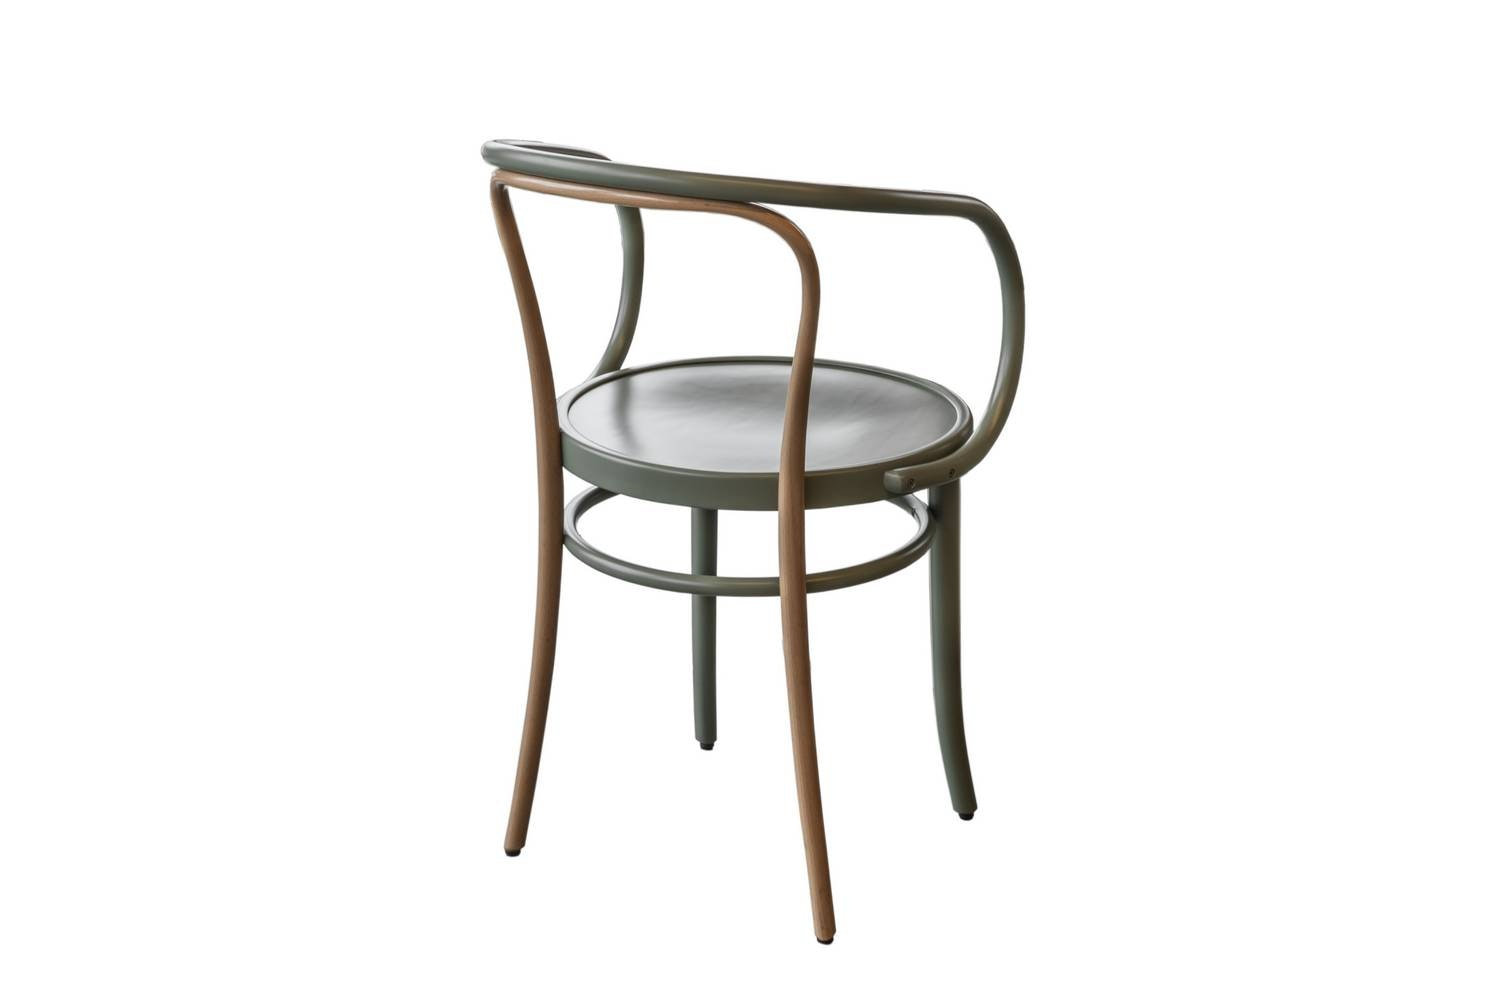 Wiener Stuhl Chair by August Thonet for Wiener GTV Design